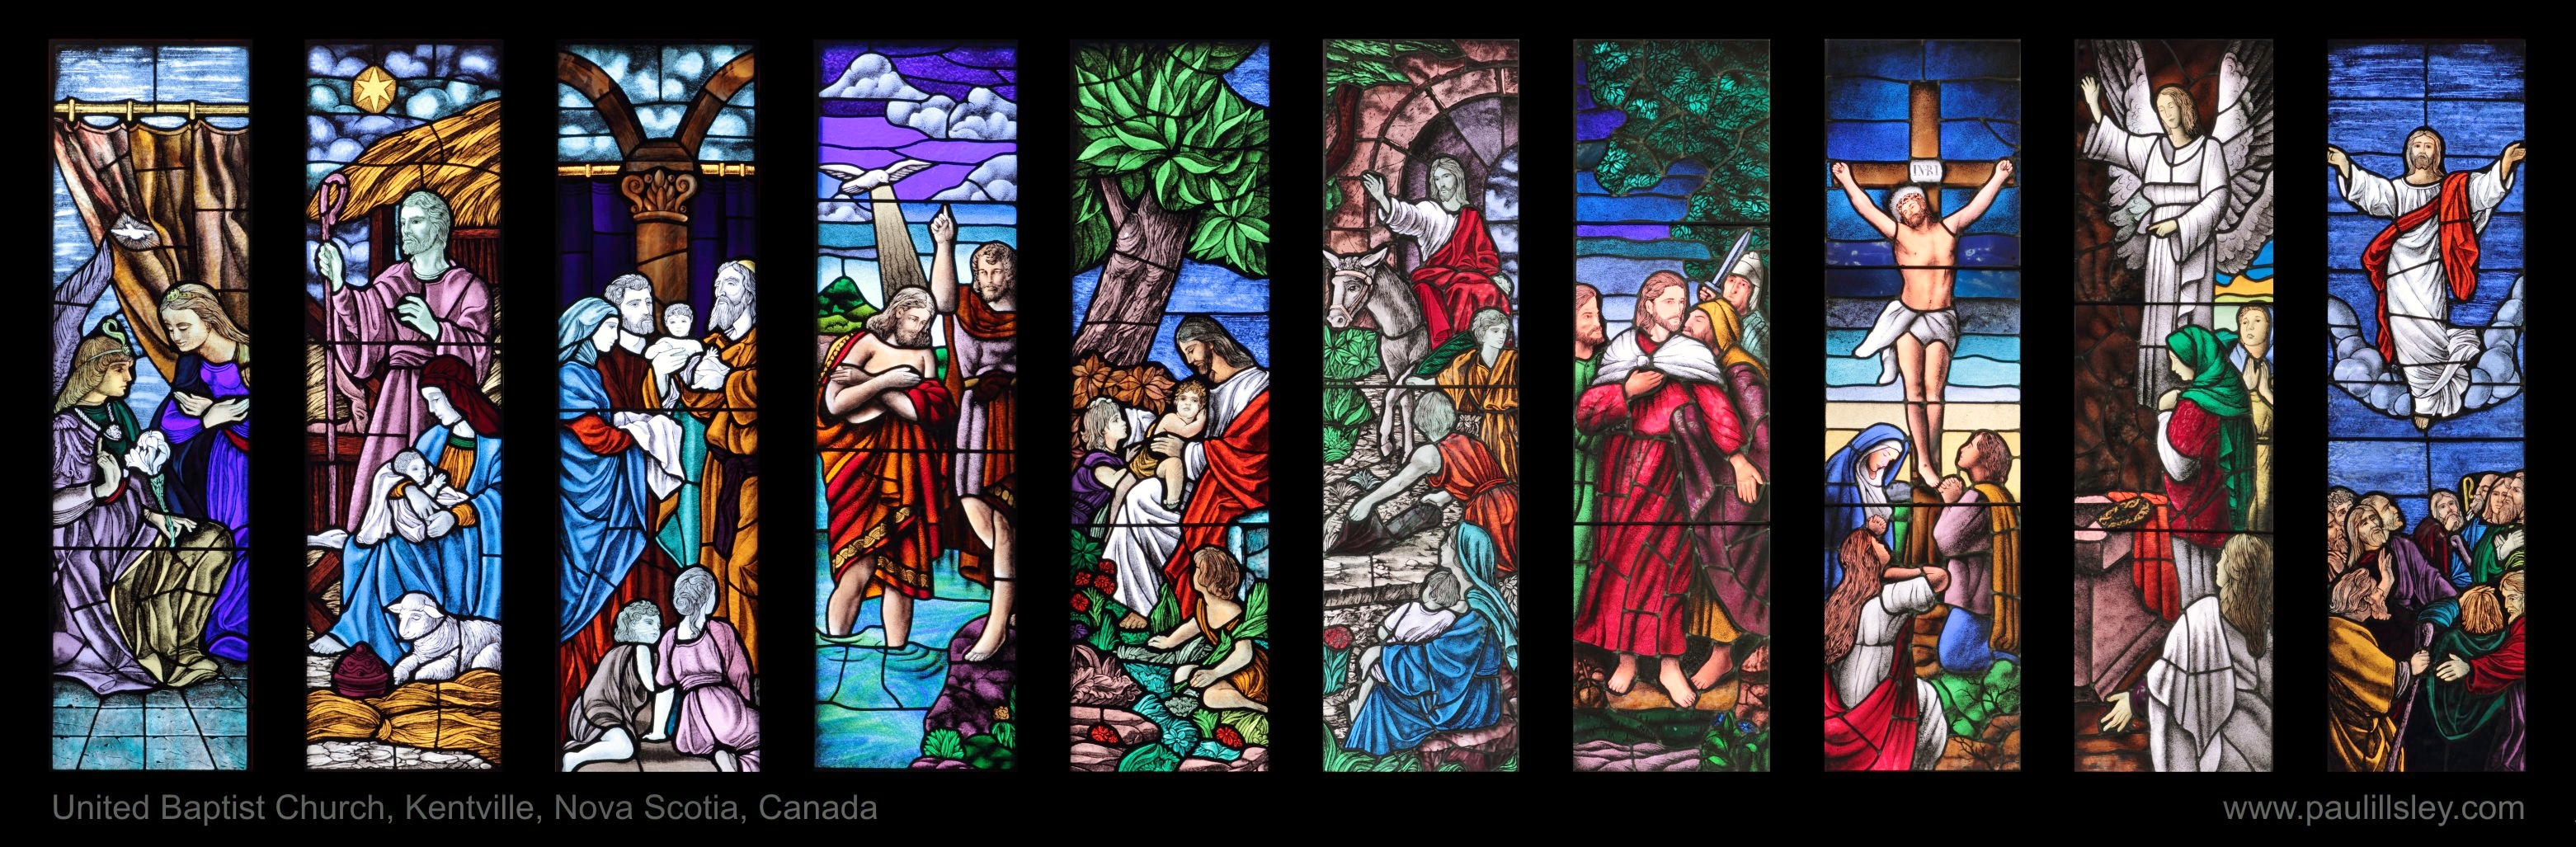 Stained_Glass_Windows (2)